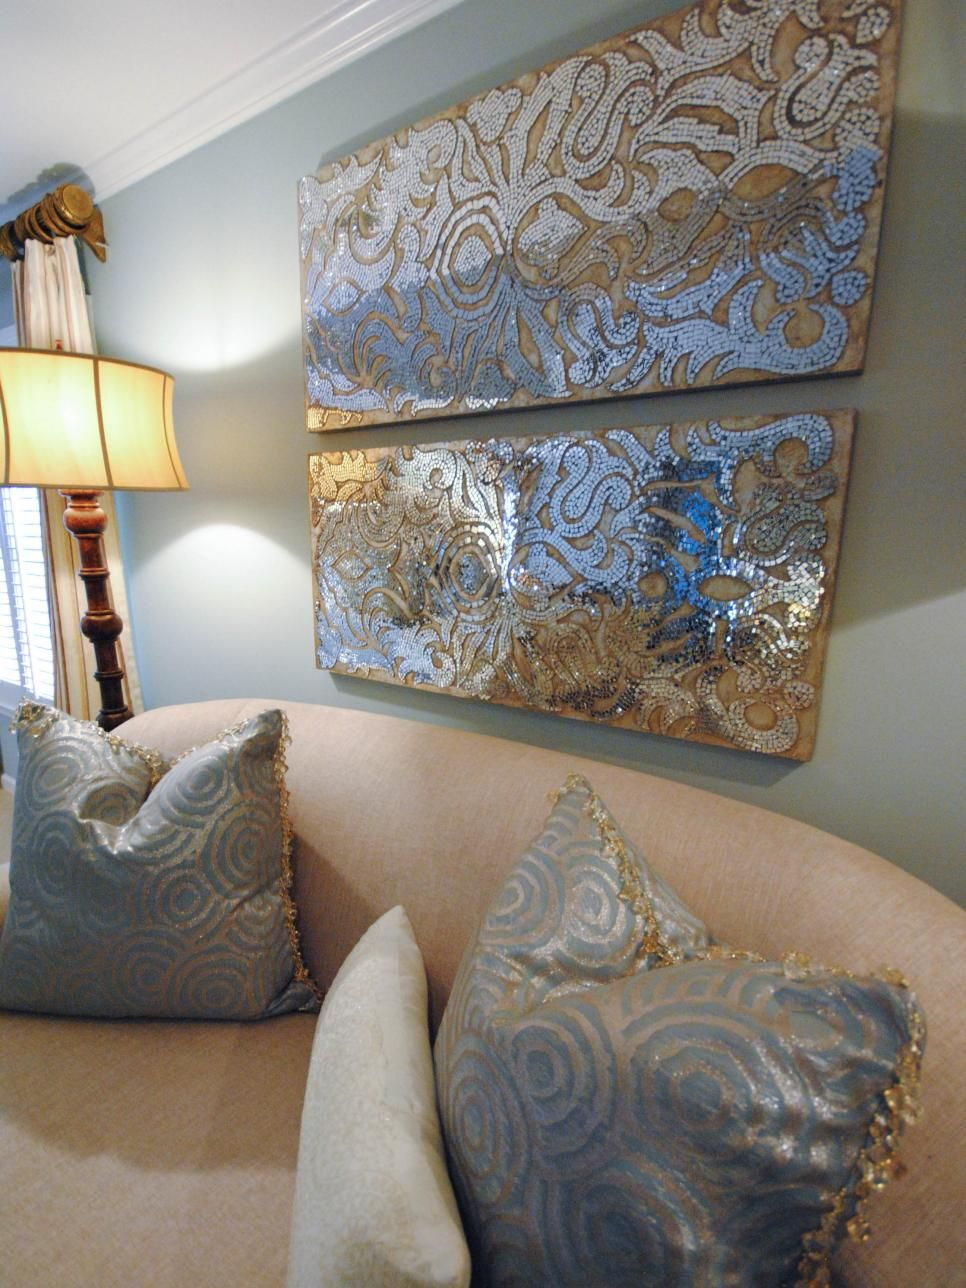 Sequined wall art adds glamorous appeal to the bedroom home